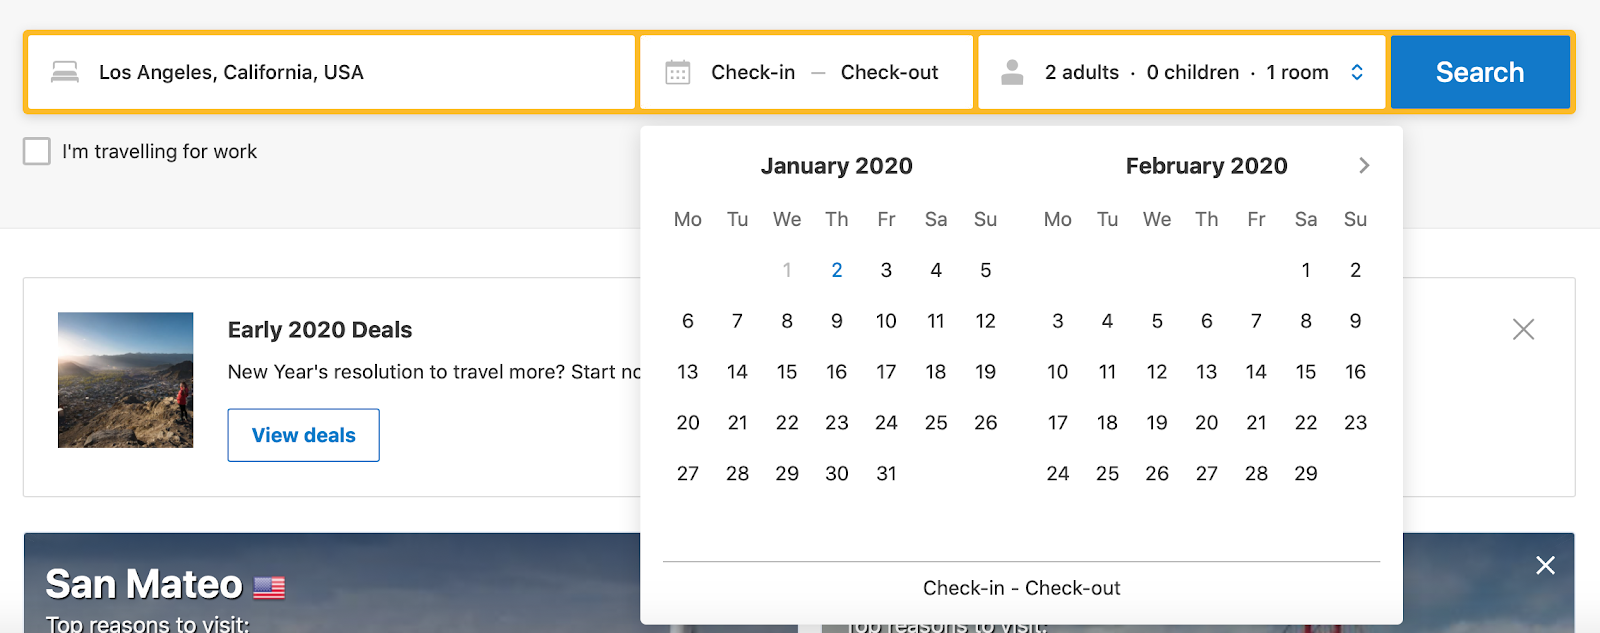 Booking.com avoids unnecessary errors by disabling past dates in their calendar drop-down so that users can't select them.